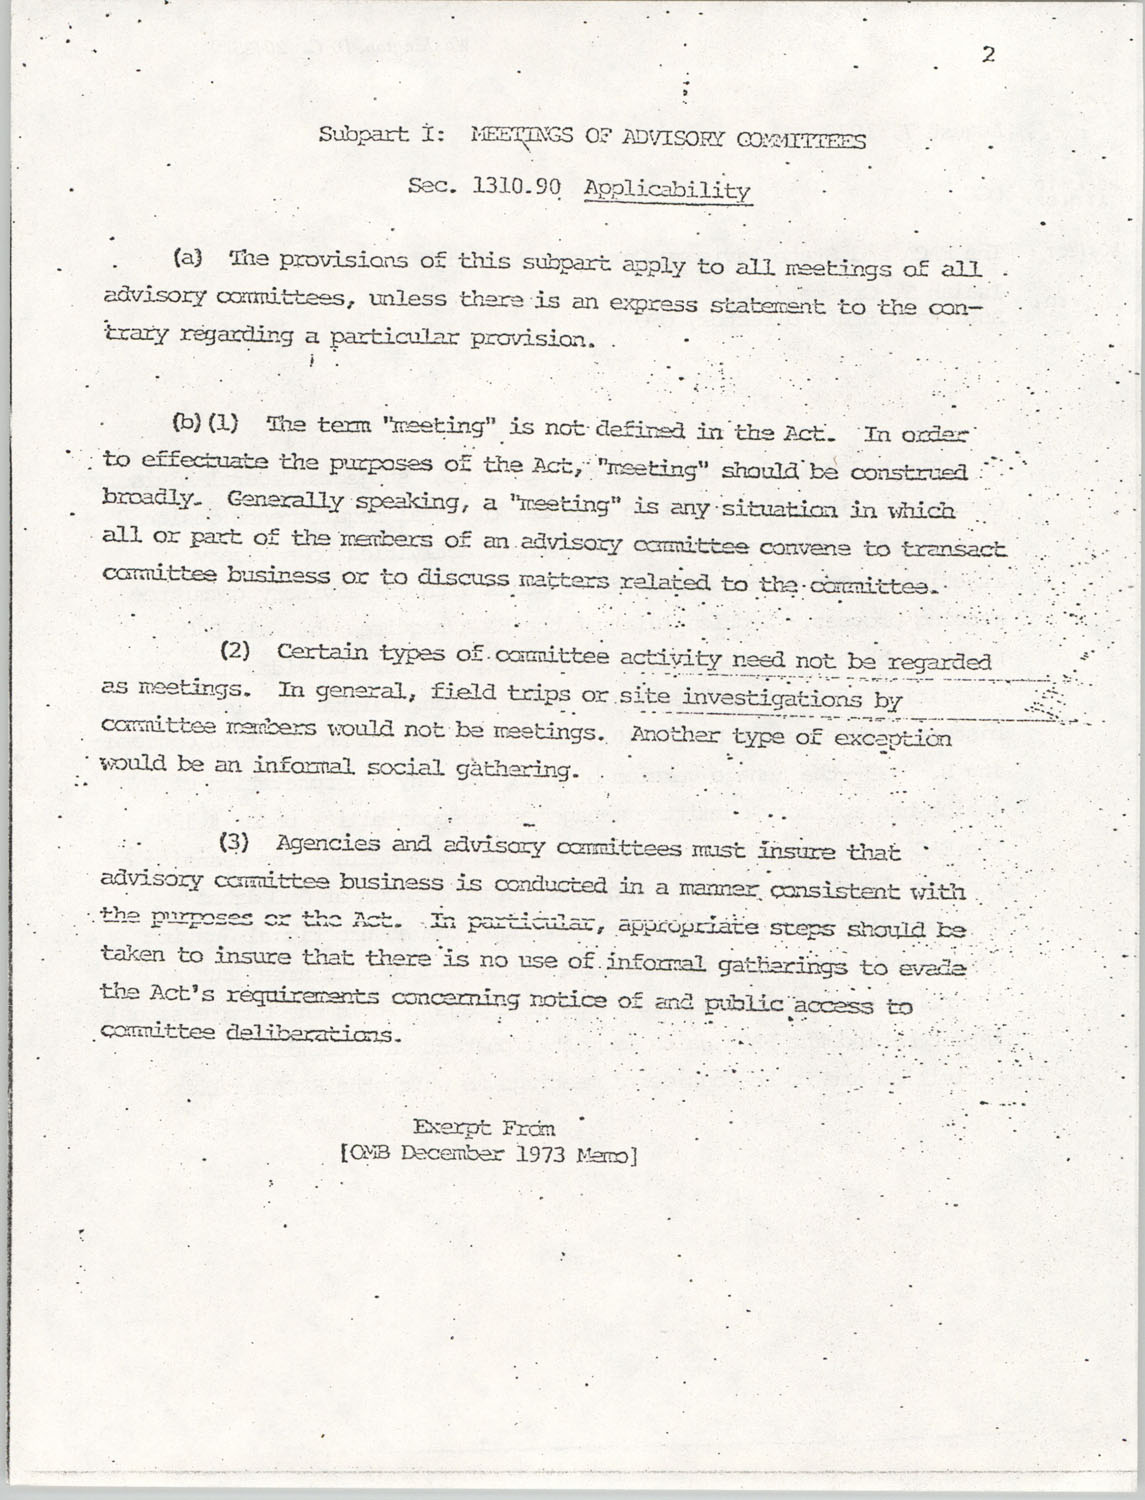 Memorandum from Lawrence B. Glick to Isaiah T. Creswell, August 7, 1975, Page 2